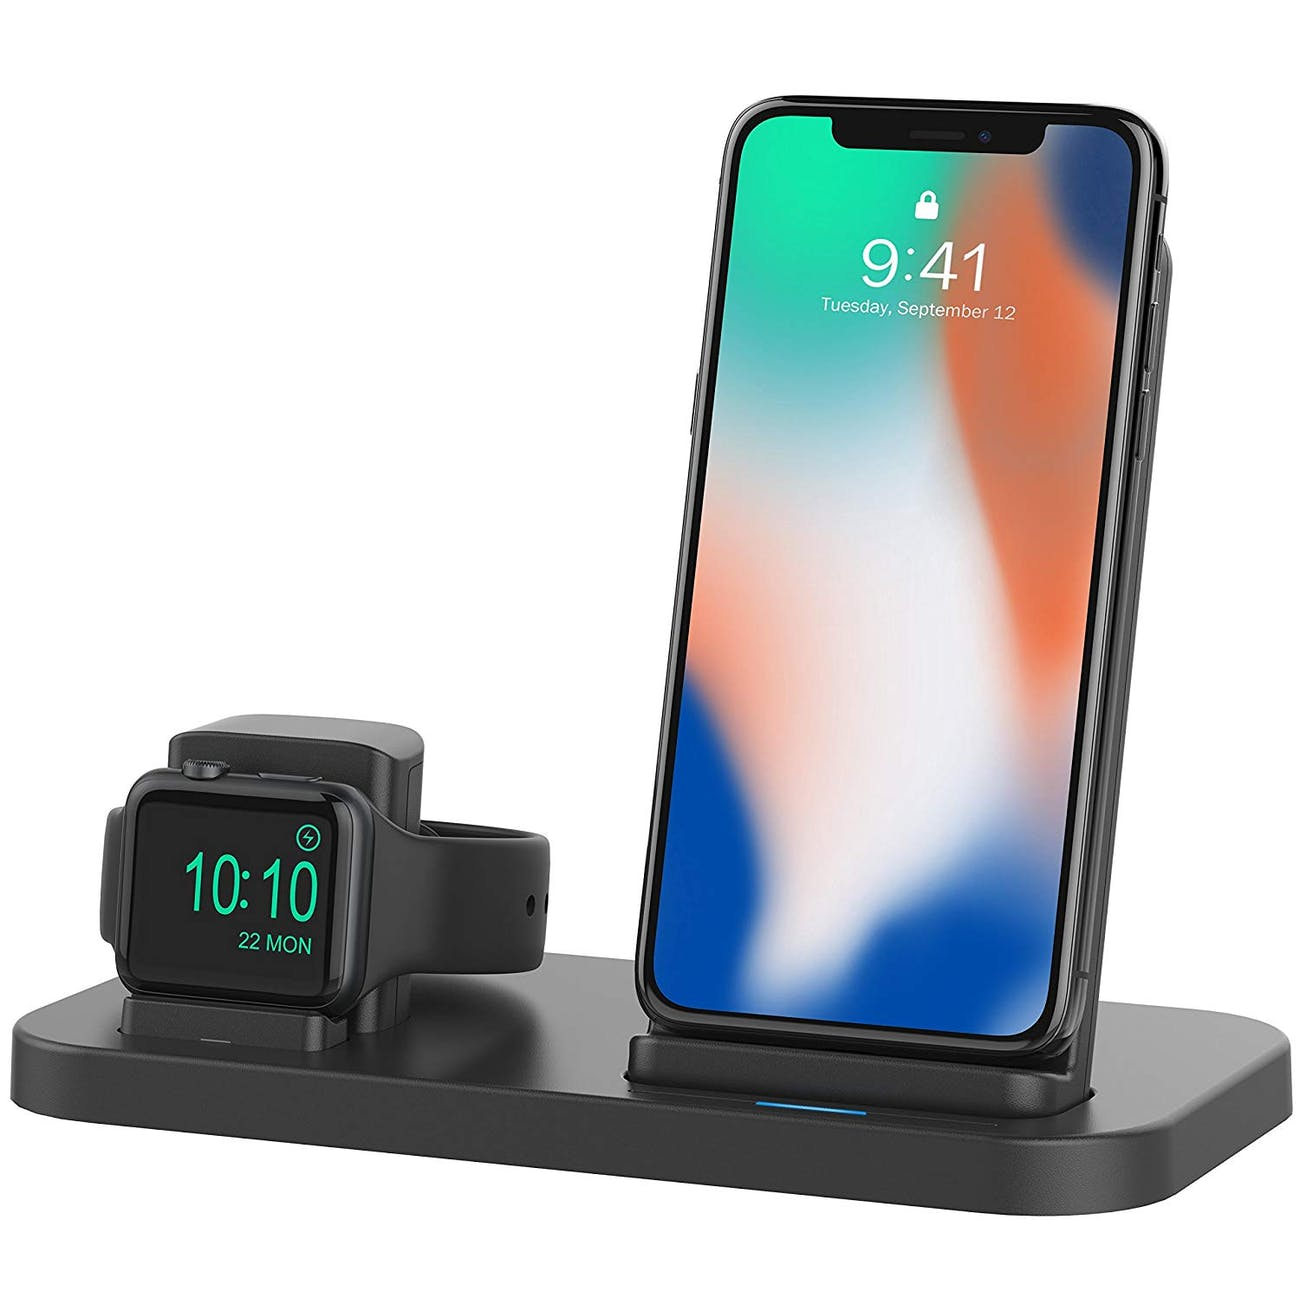 Beacoo 2 in 1 Phone Wireless Charger Stand & Charging Station Compatible for Apple Watch Holder for Apple iWatch Series 4/3/2/1/iPhone X Xs MAX/8 Plus/8 (Black)